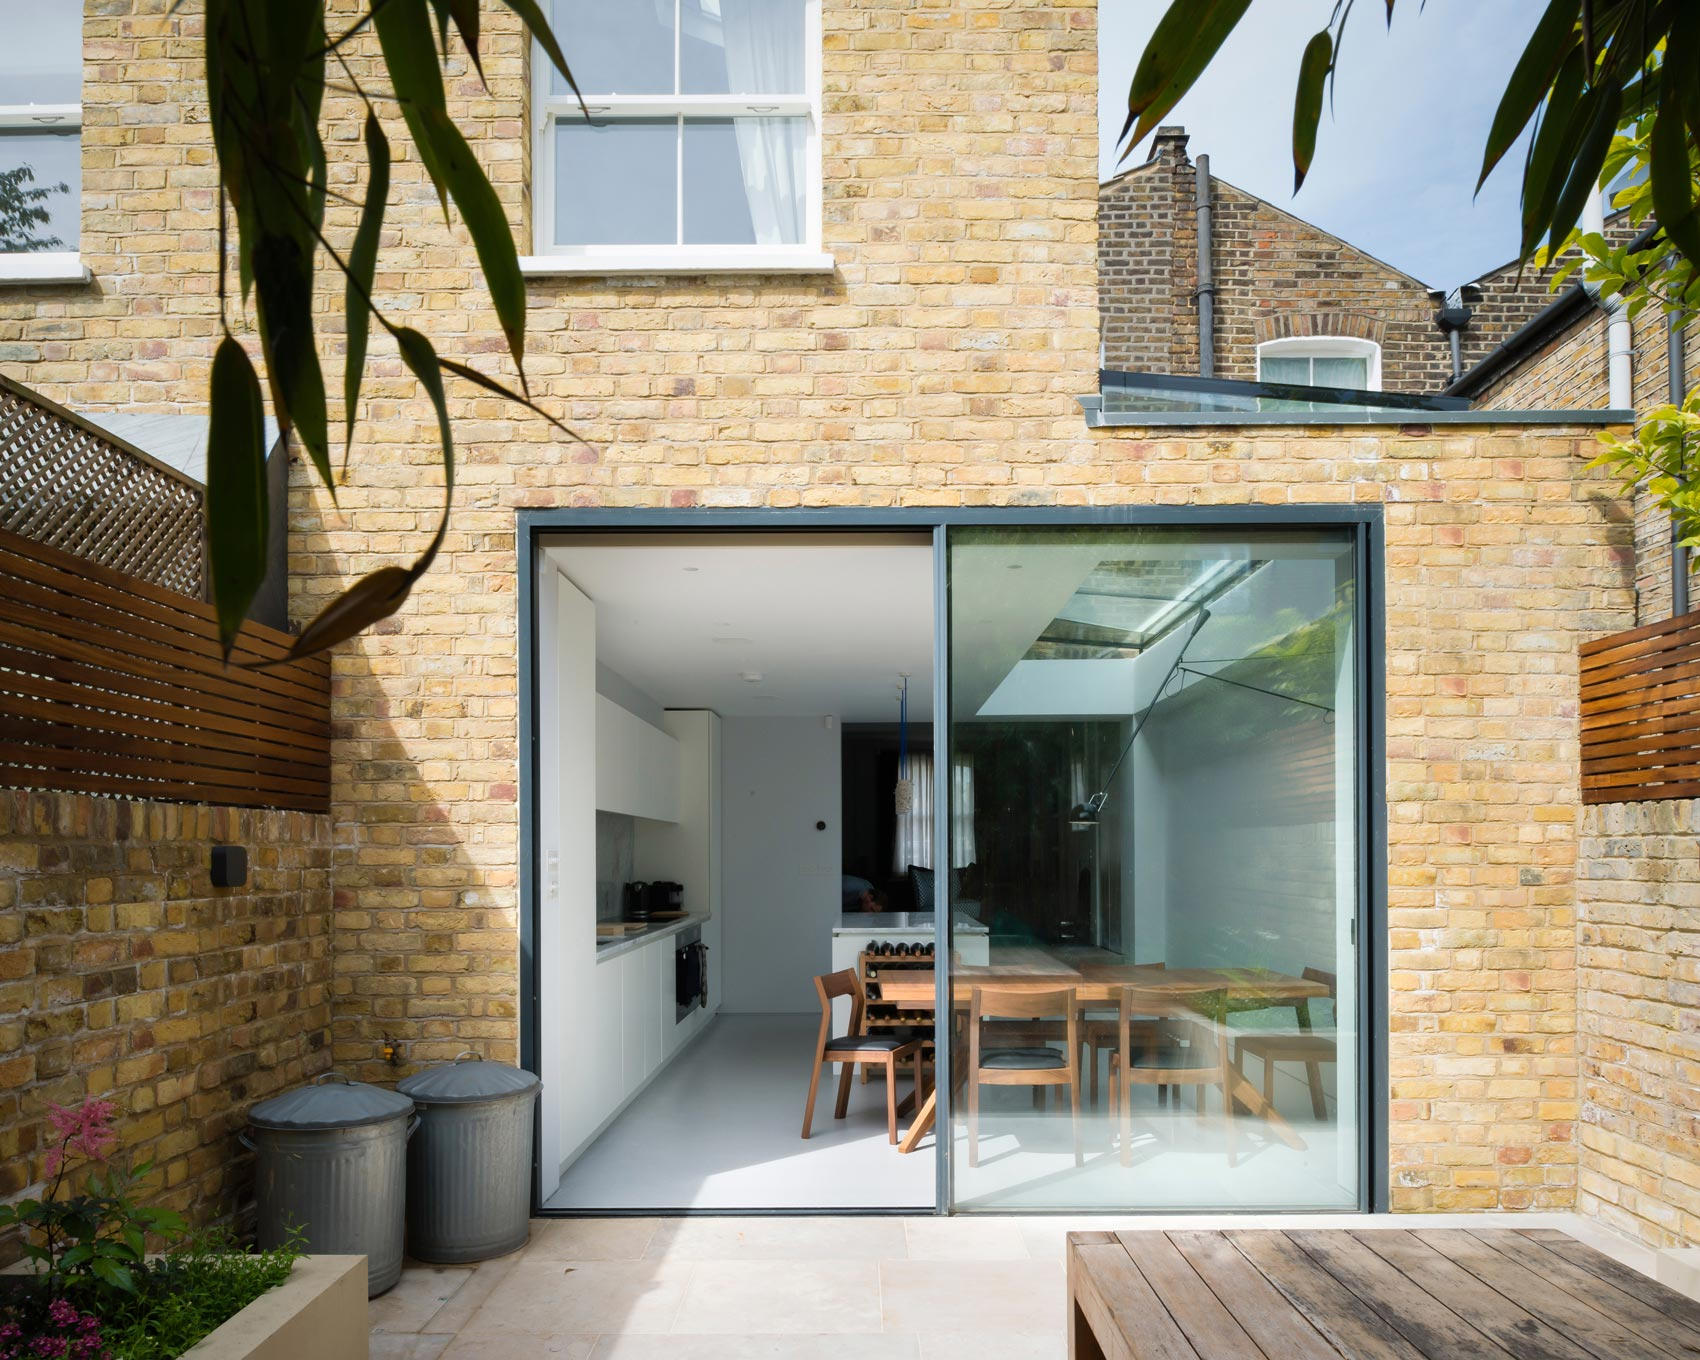 Bethnal green house extension architecture for london for Extension architecte